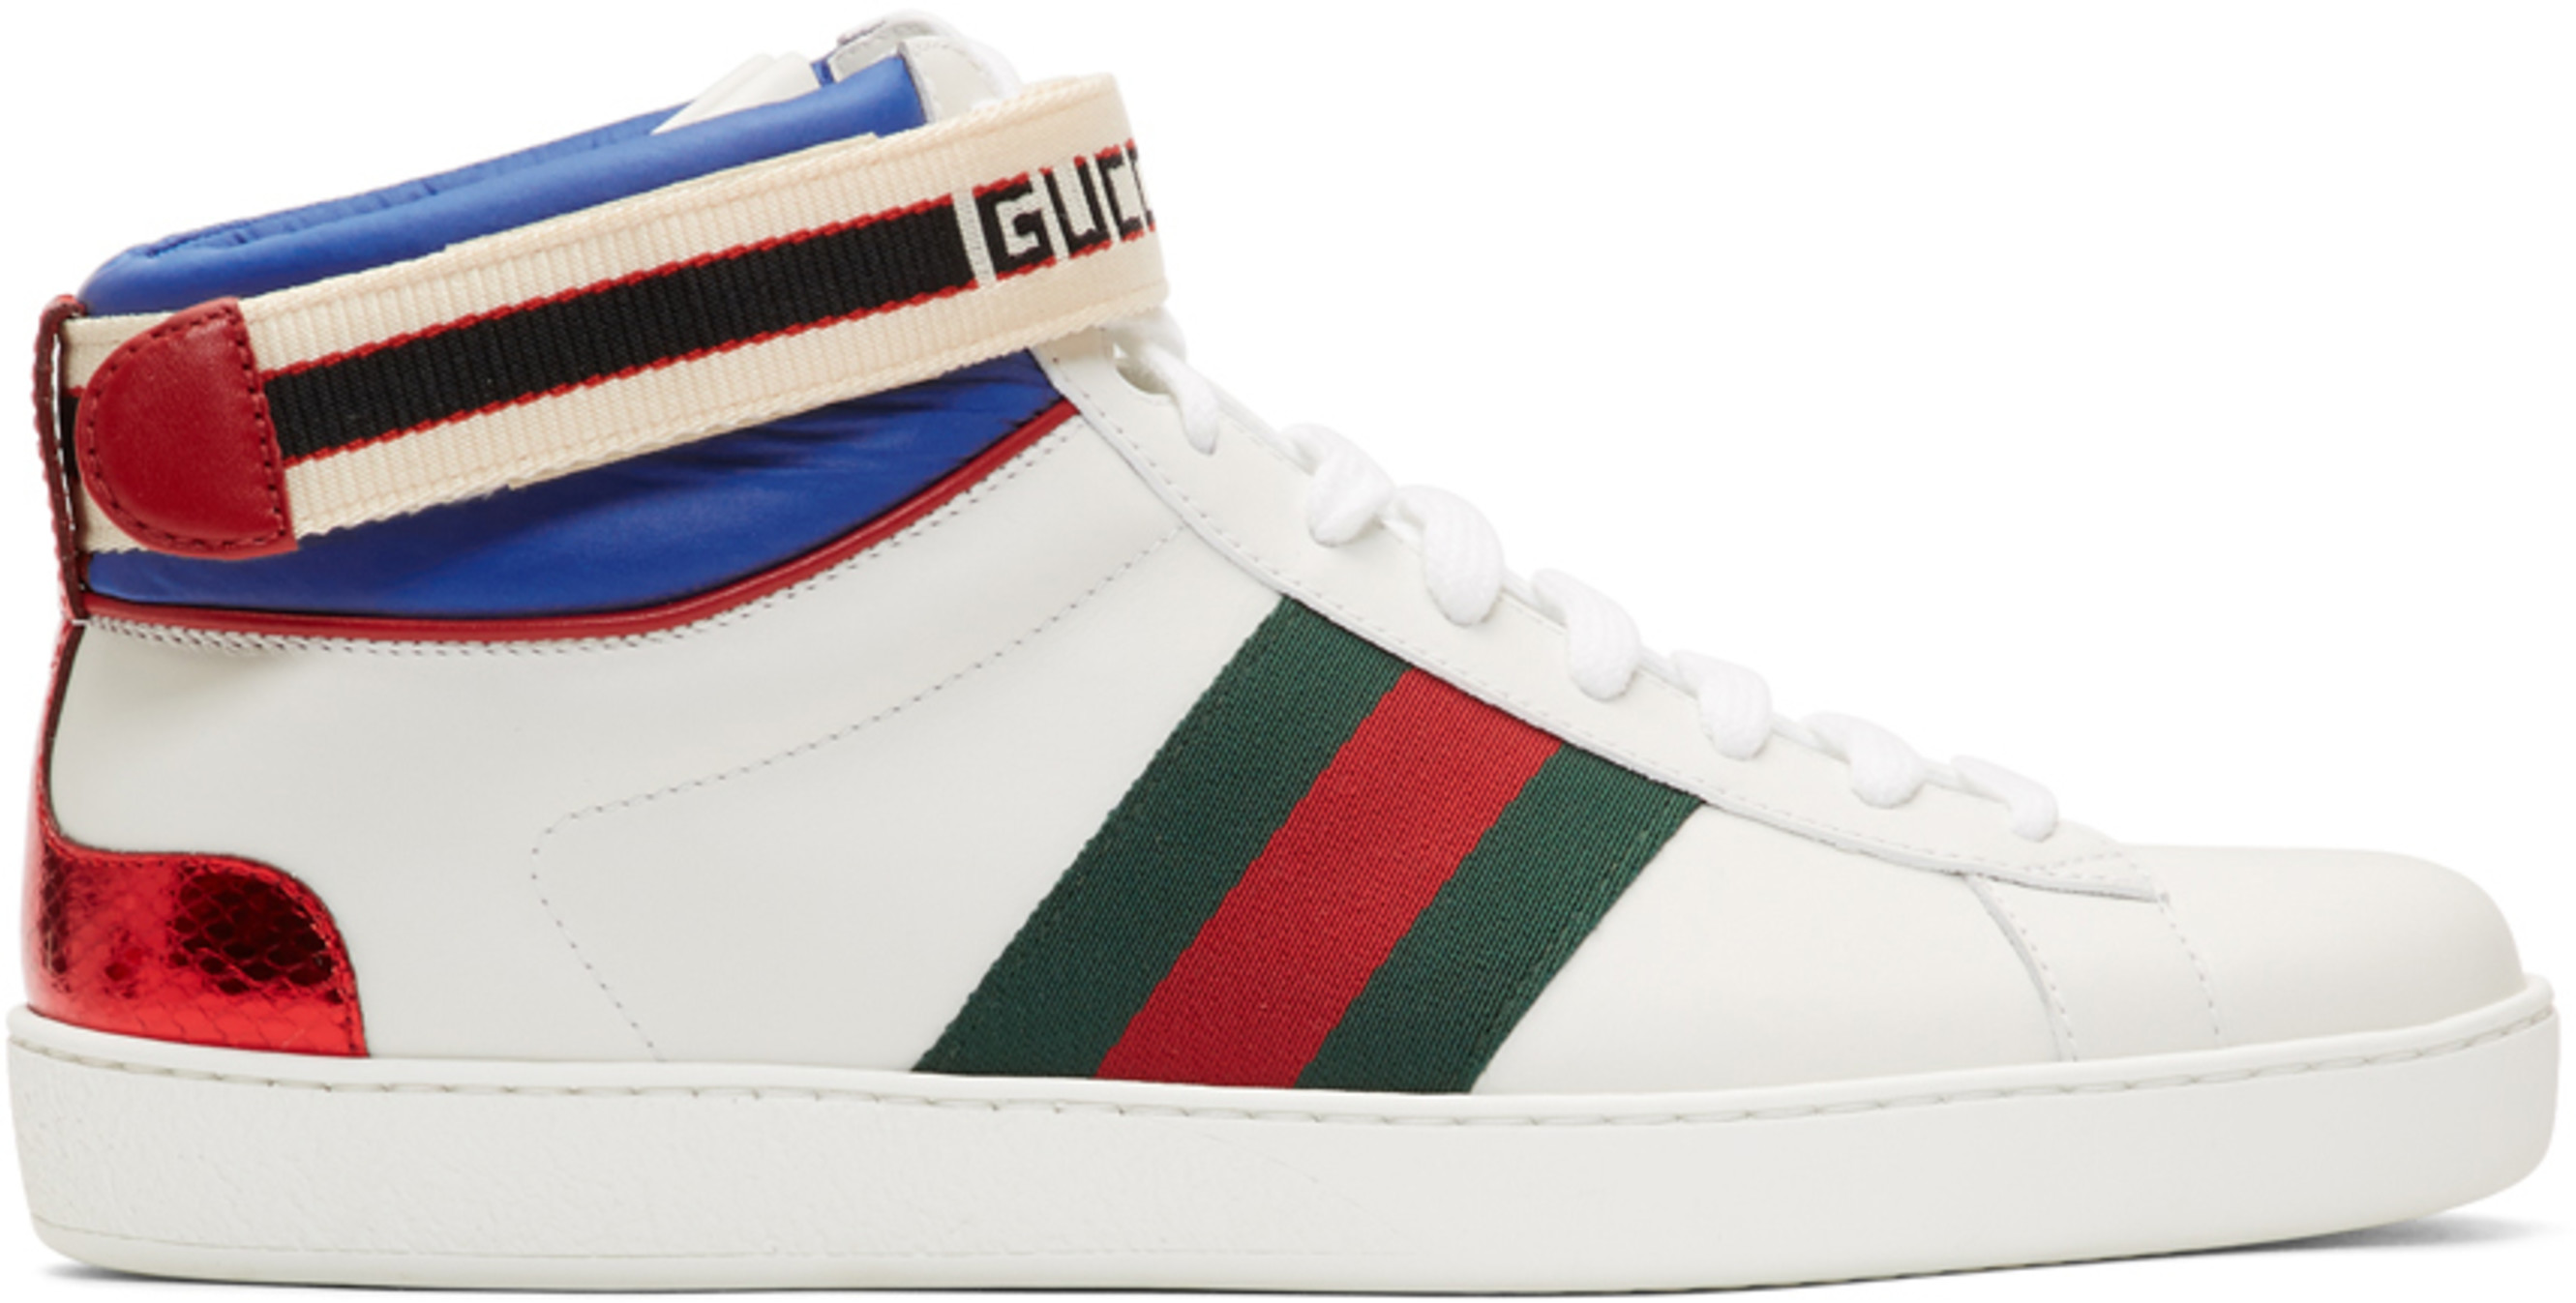 21d00b61cb6 Gucci sneakers for Men